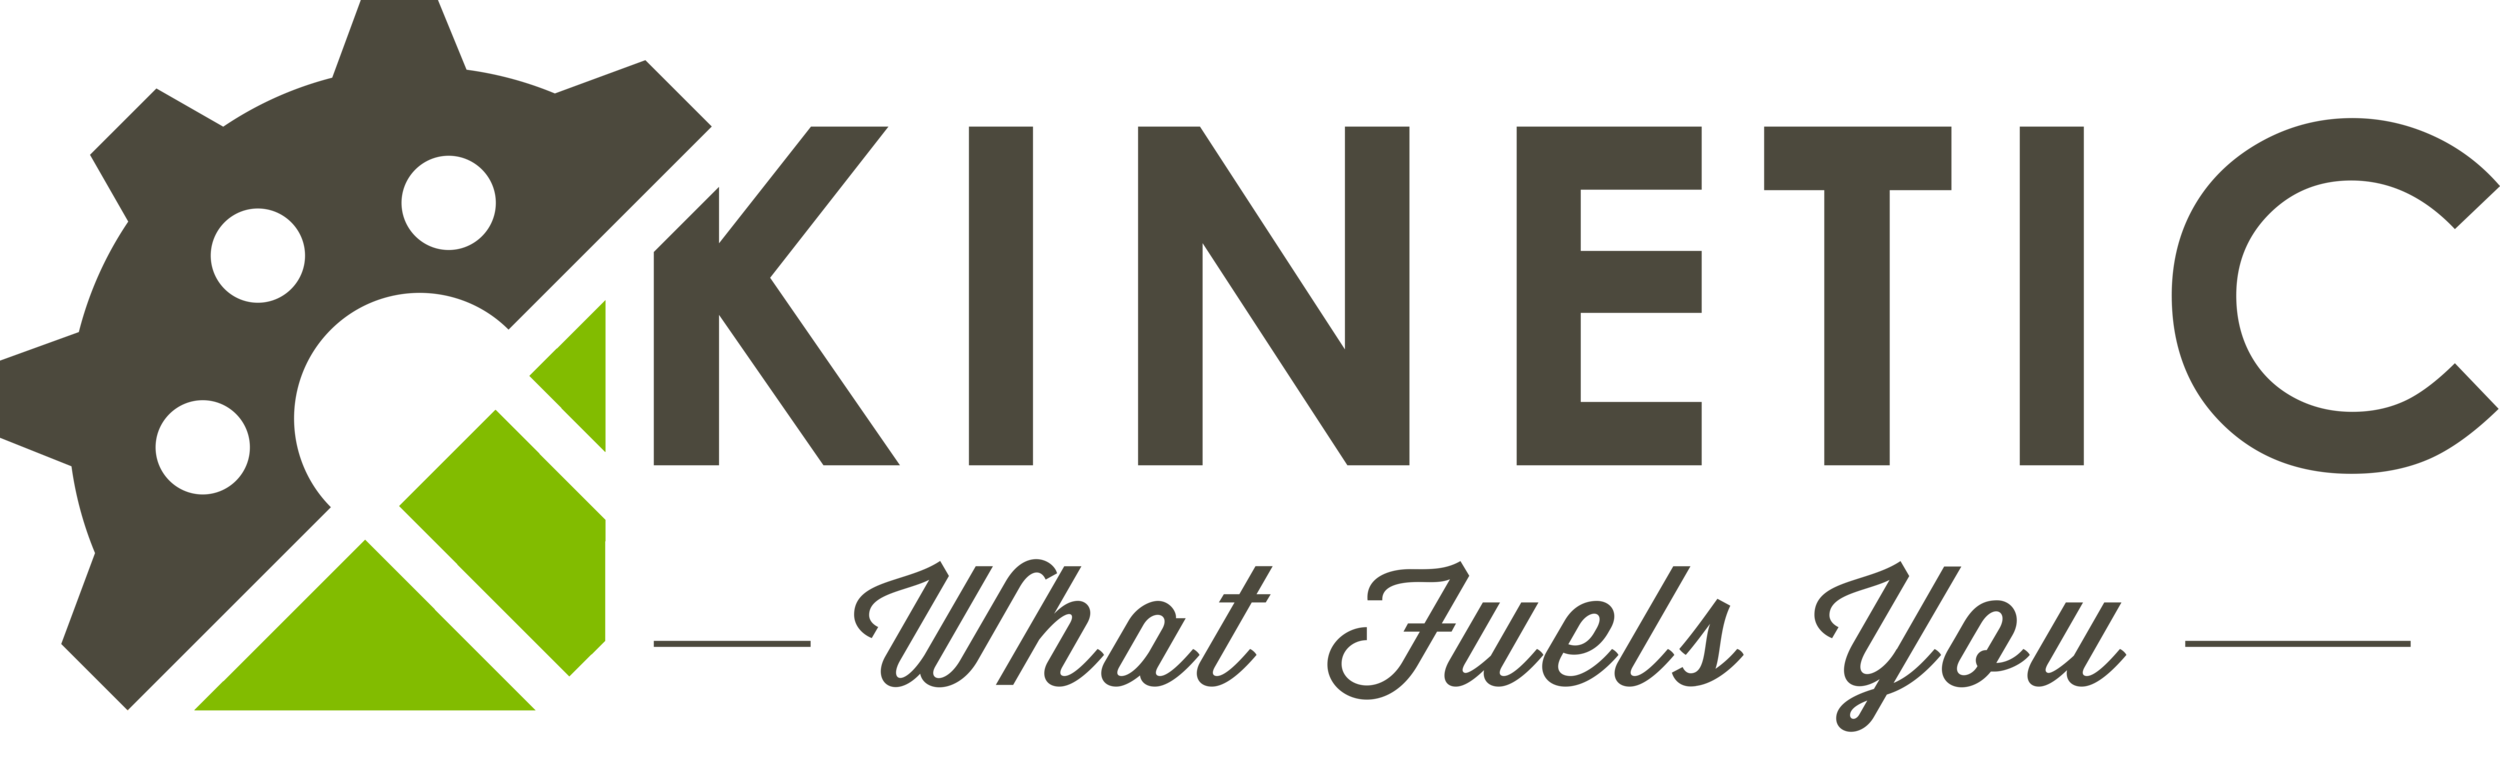 Kinetic Logo no background_green_reverse.png